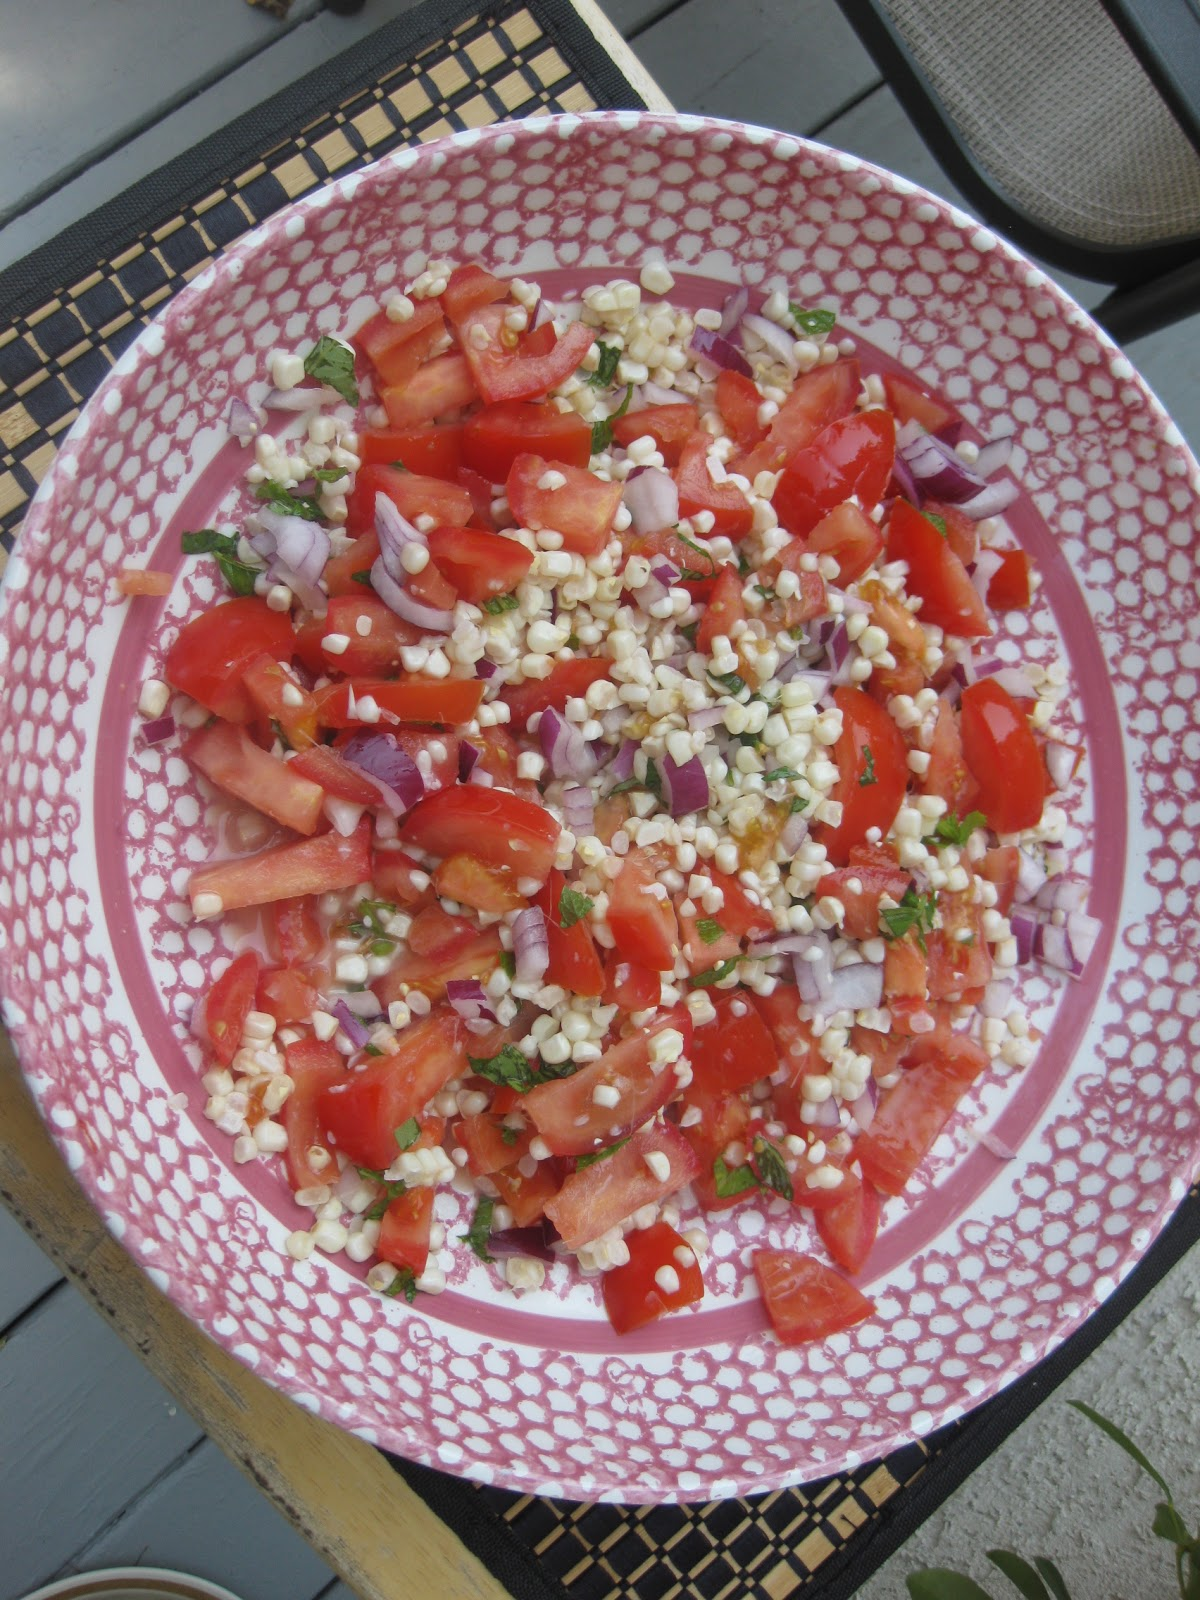 Gluten Free A-Z Blog: Jersey Corn and Tomato Salad